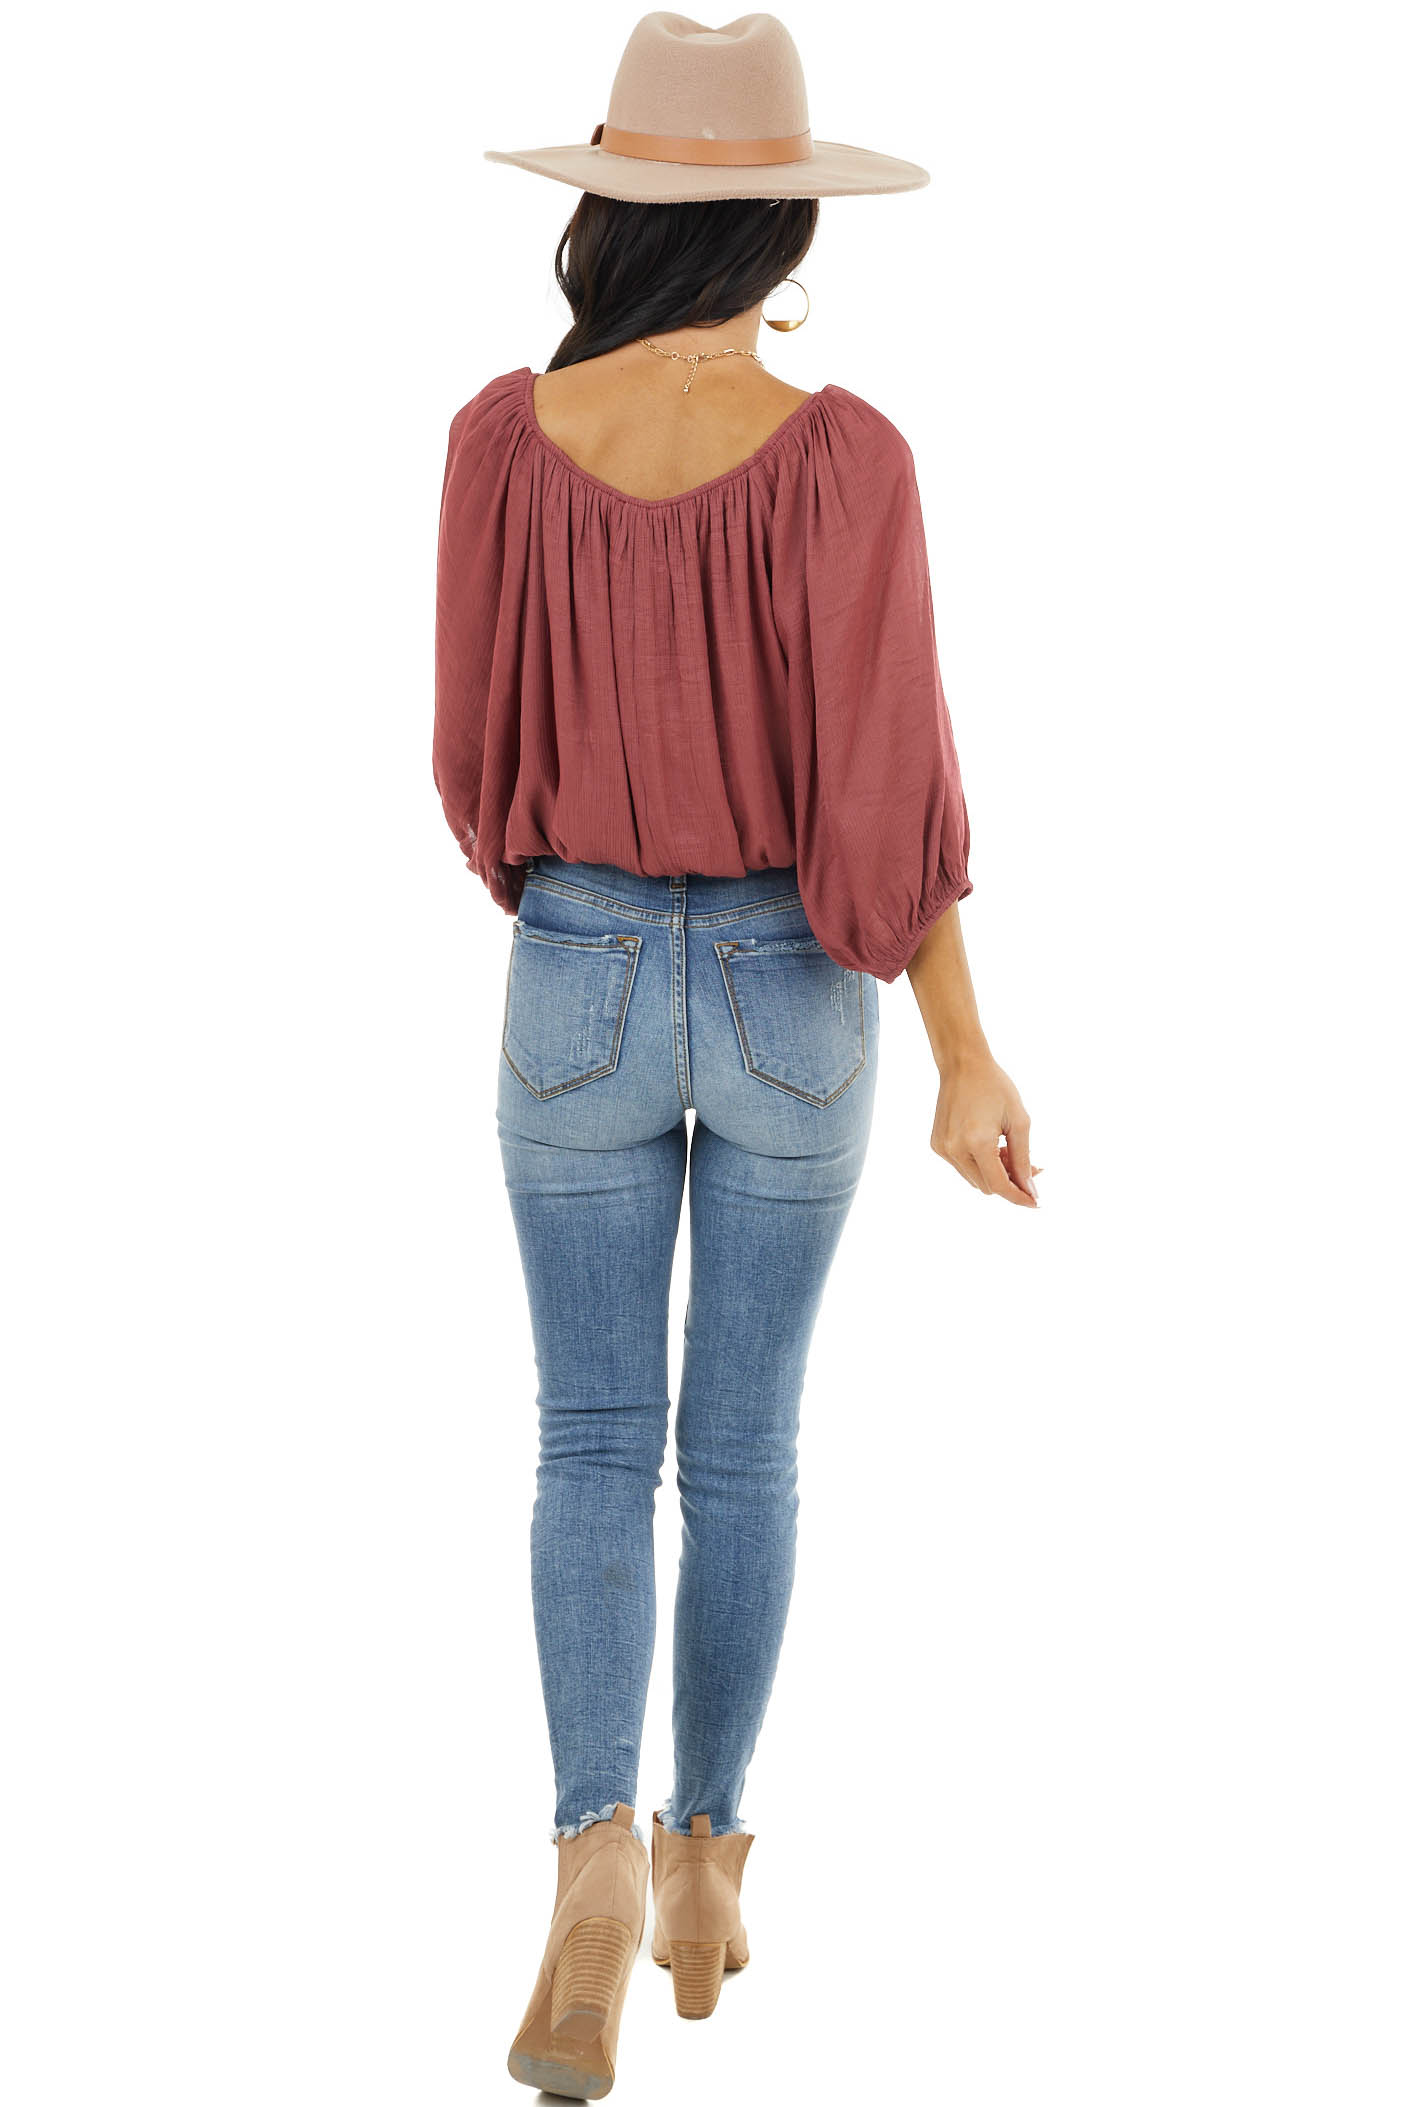 Marsala Boat Neck Crop Top with Long Bubble Sleeves